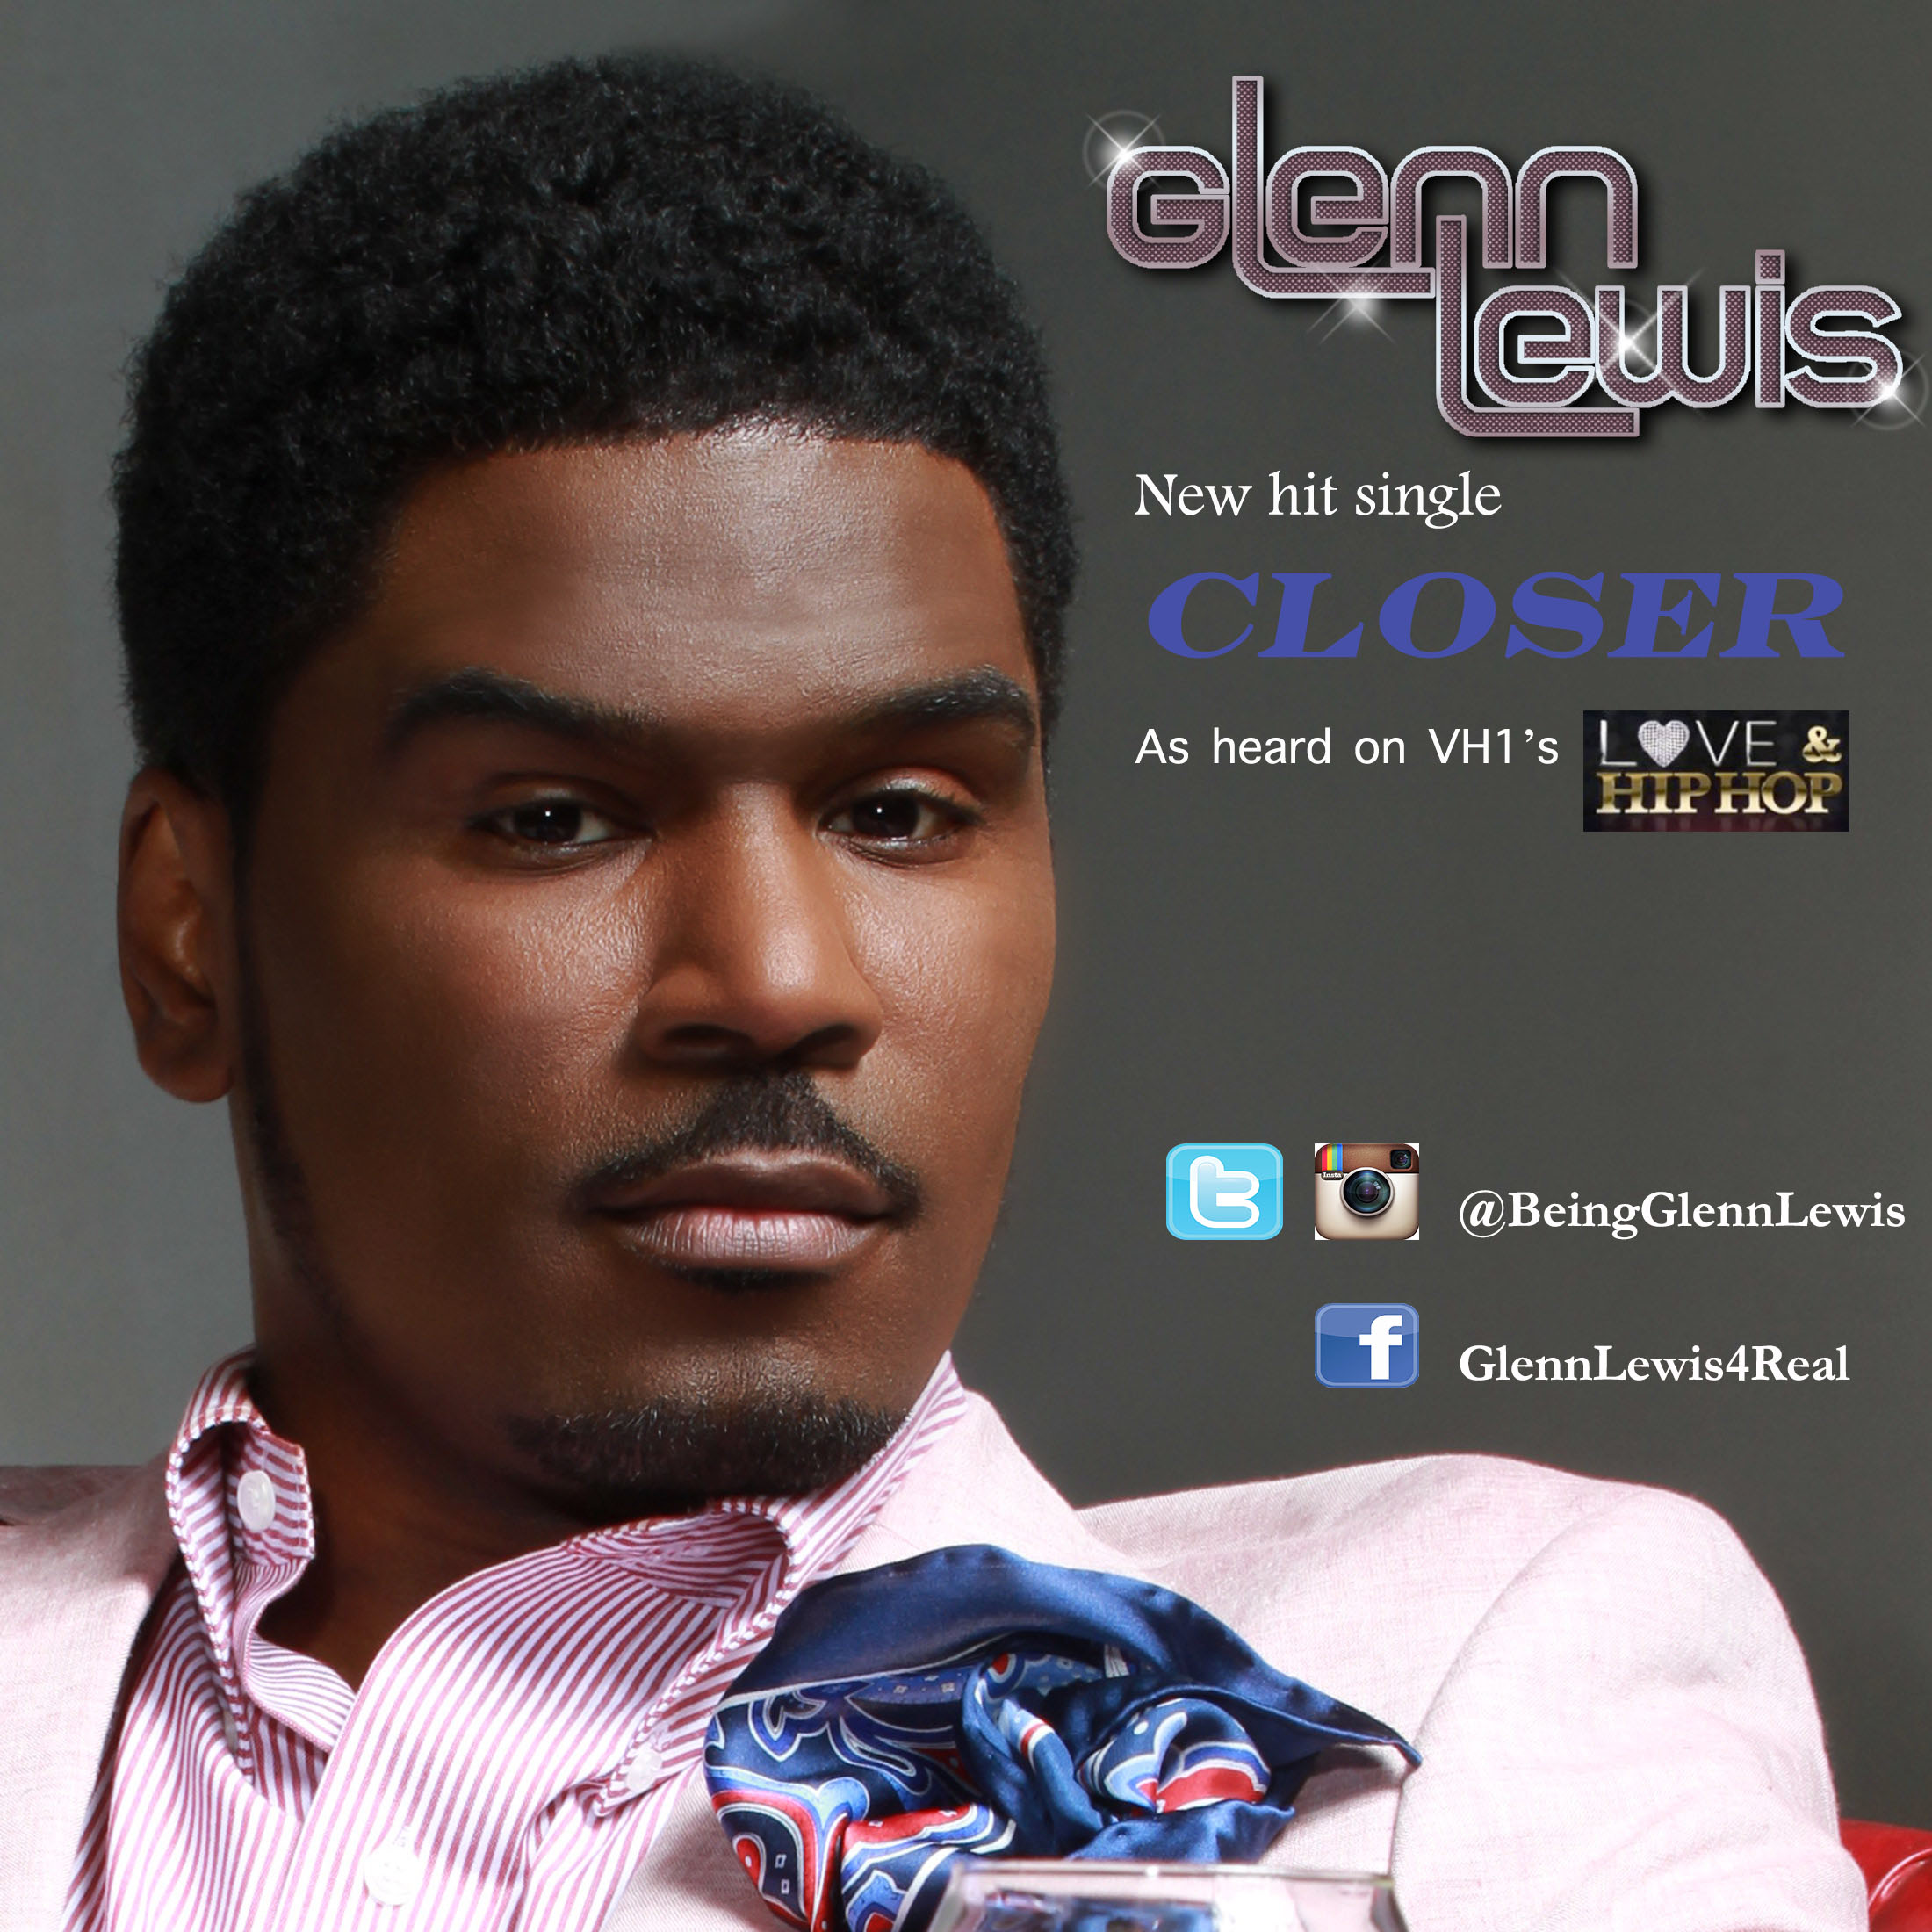 Glenn Lewis Closer Glenn Lewis Closer (Produced by Carvin & Ivan)